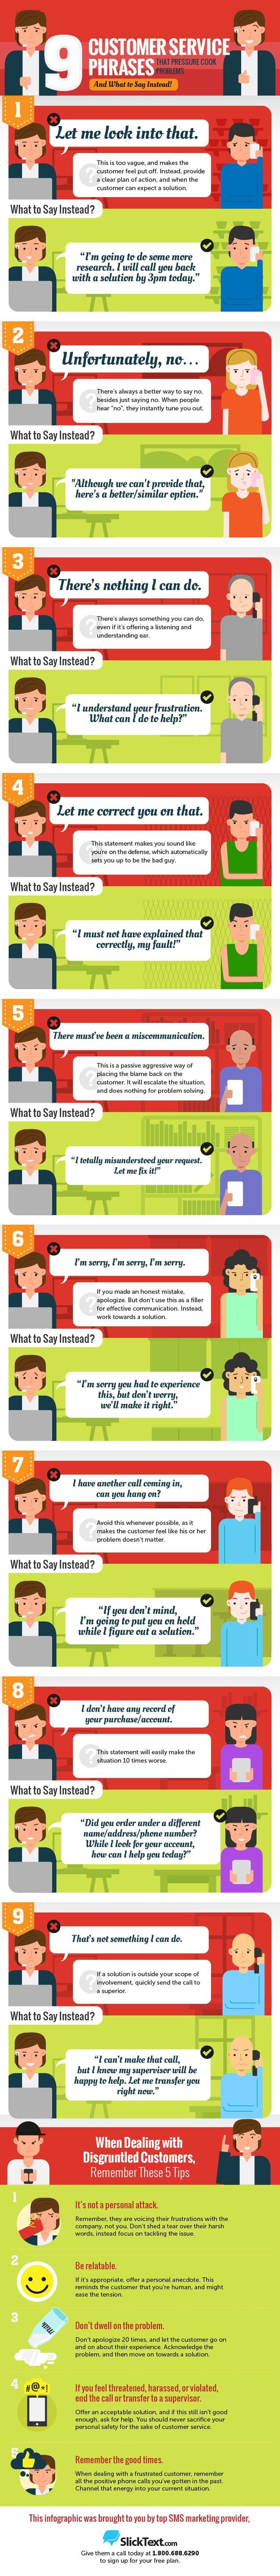 248 Best Interesting Info Images On Pinterest Gym Writing And Simple Kitchen Plumbing Diagram Get Domain Pictures Getdomainvidscom 9 Customer Service Phrases That Pressure Cook Problems What To Say Instead Infographic